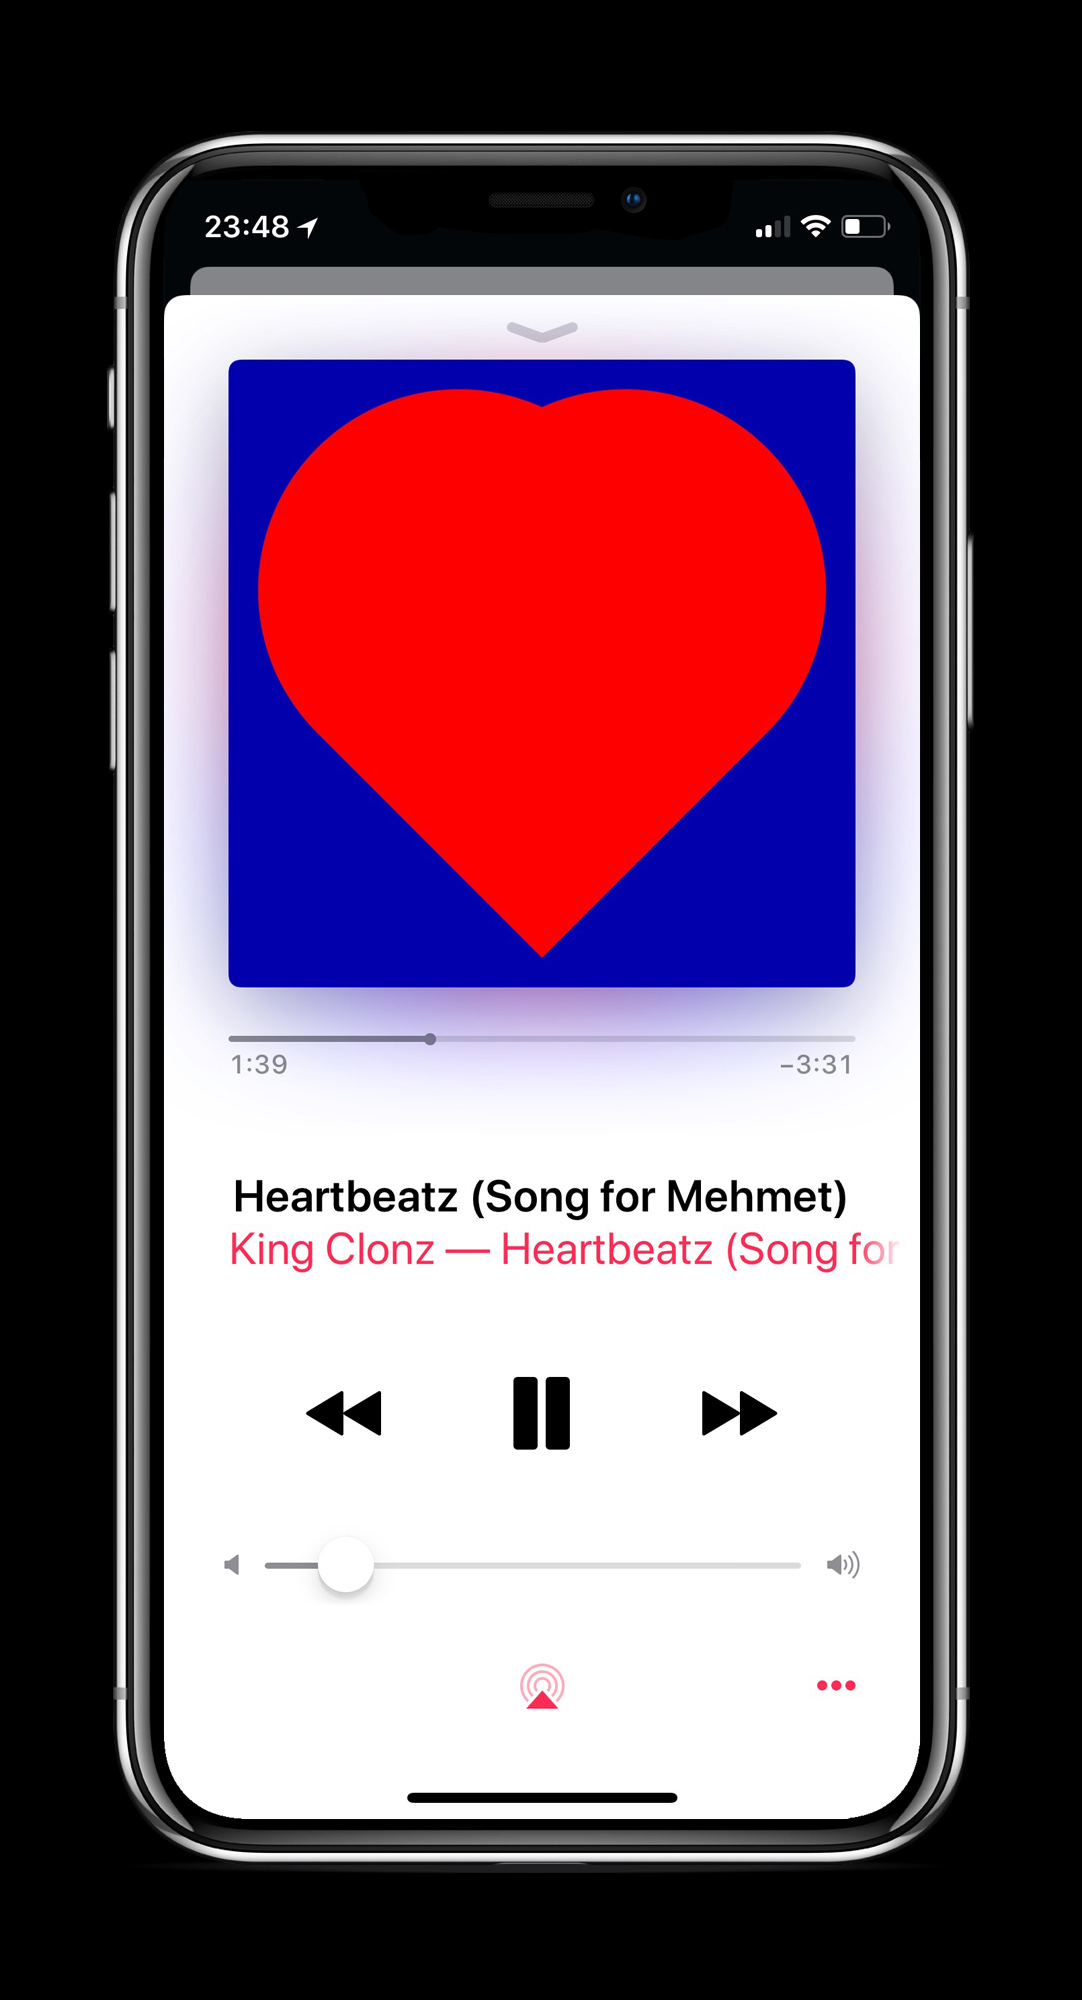 King Clonz Album Cover Art, Heartbeatz, Matthijs Matt van Leeuwen